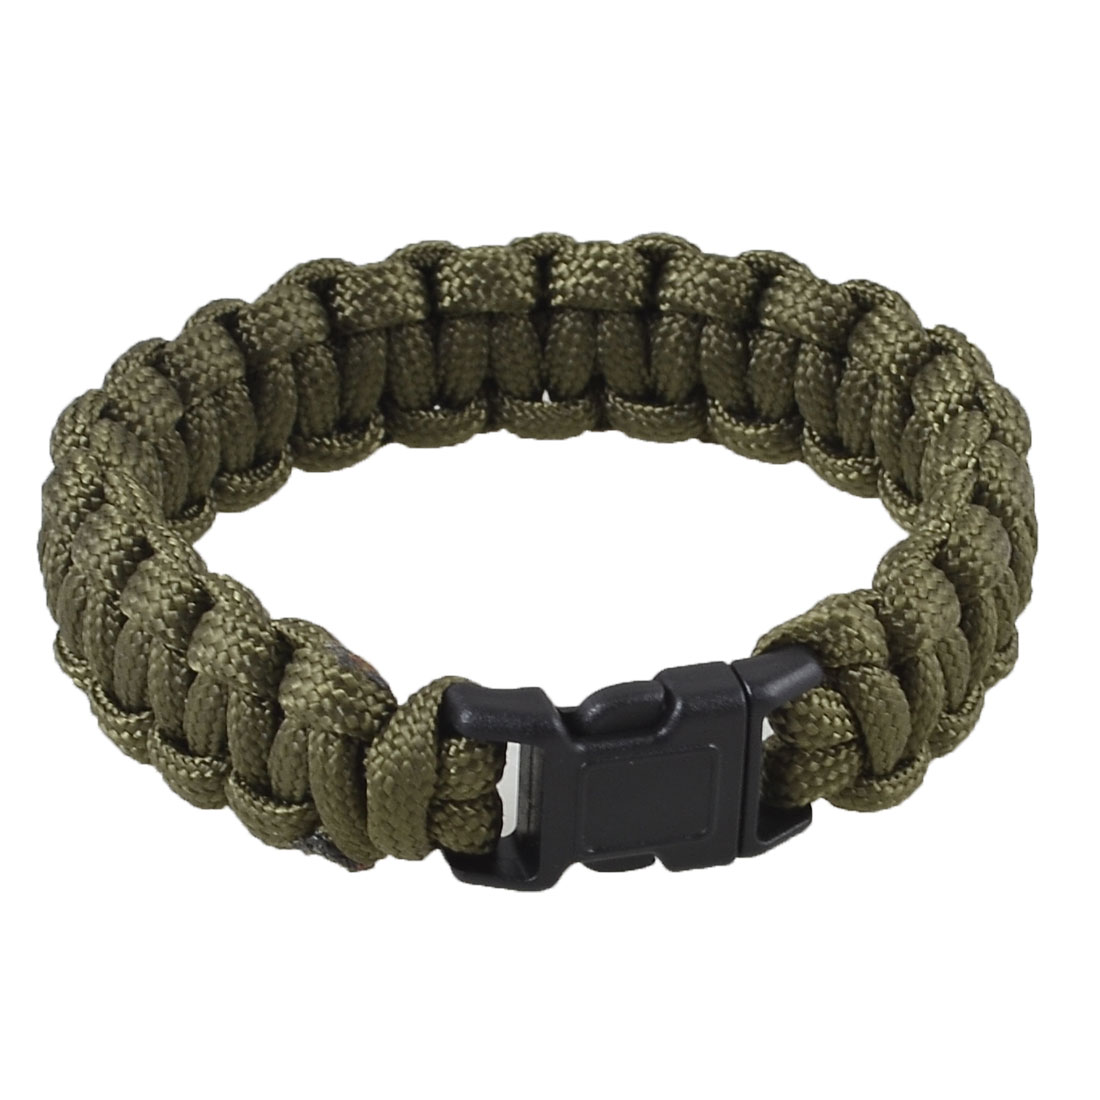 Emergency Quick Release Buckle Parachute Cord Survival Bracelet Army Green 220Lbs